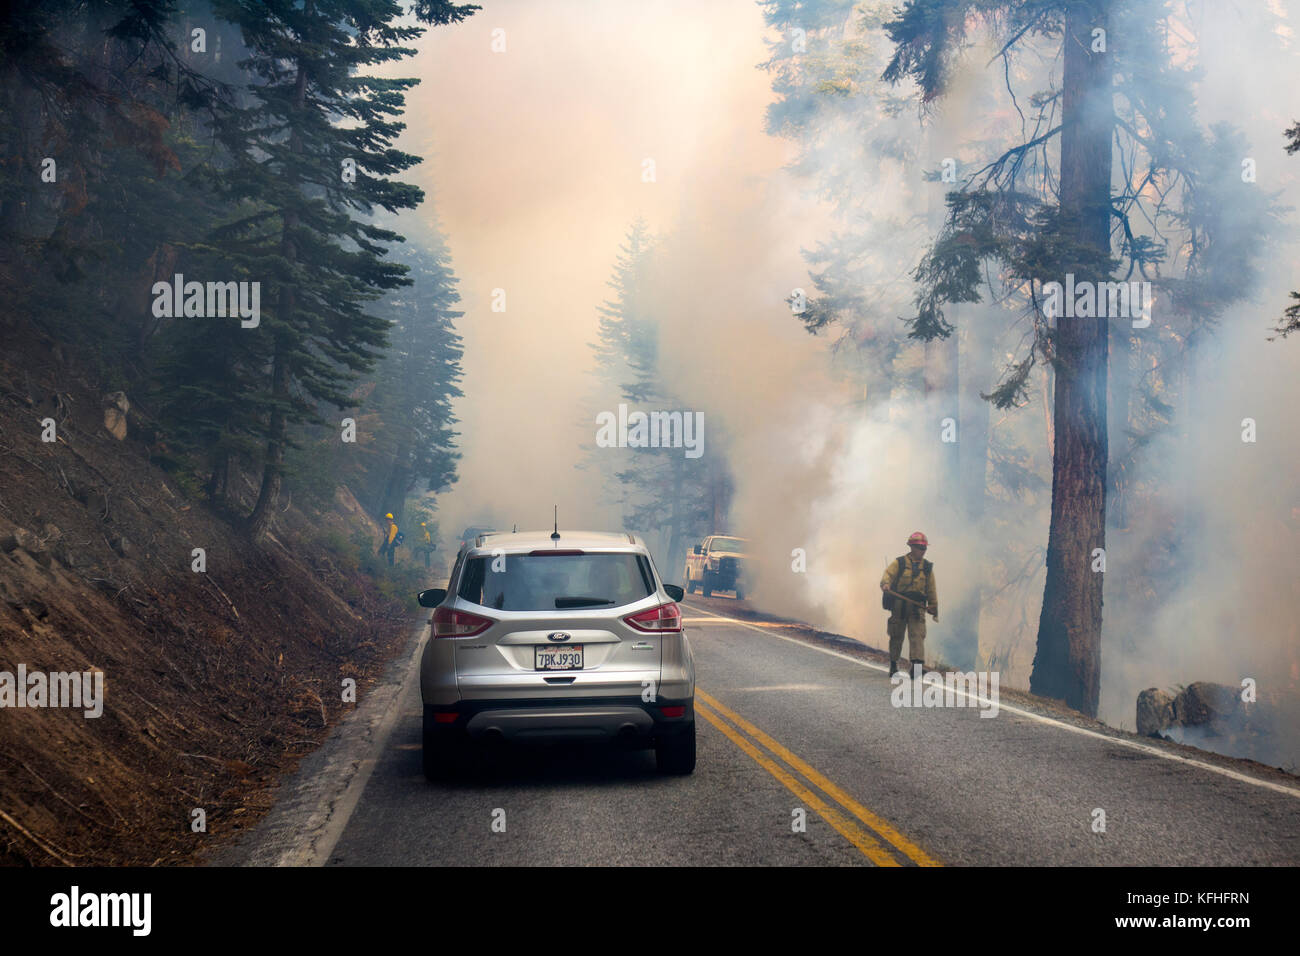 Driving through forest fire in Yosemite National Park. - Stock Image